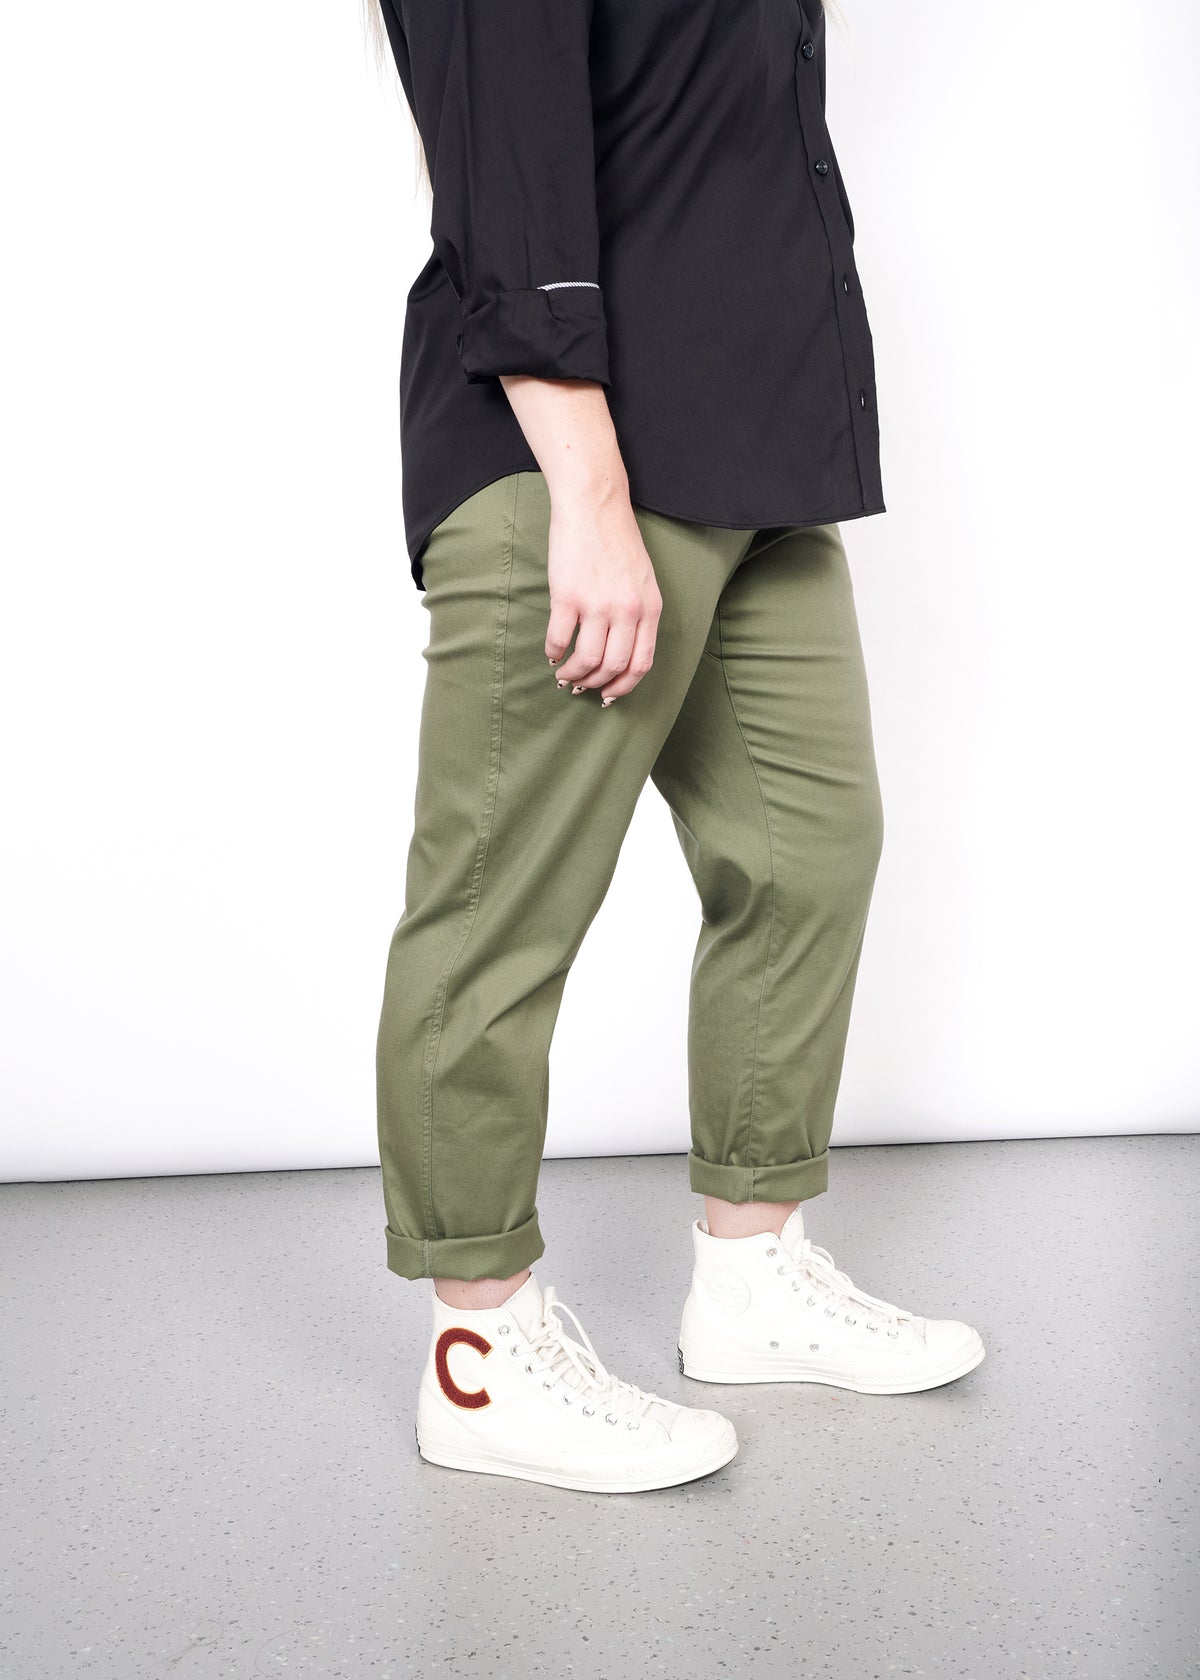 Side view of waist down model wearing olive pants, white sneakers, and black button up shirt